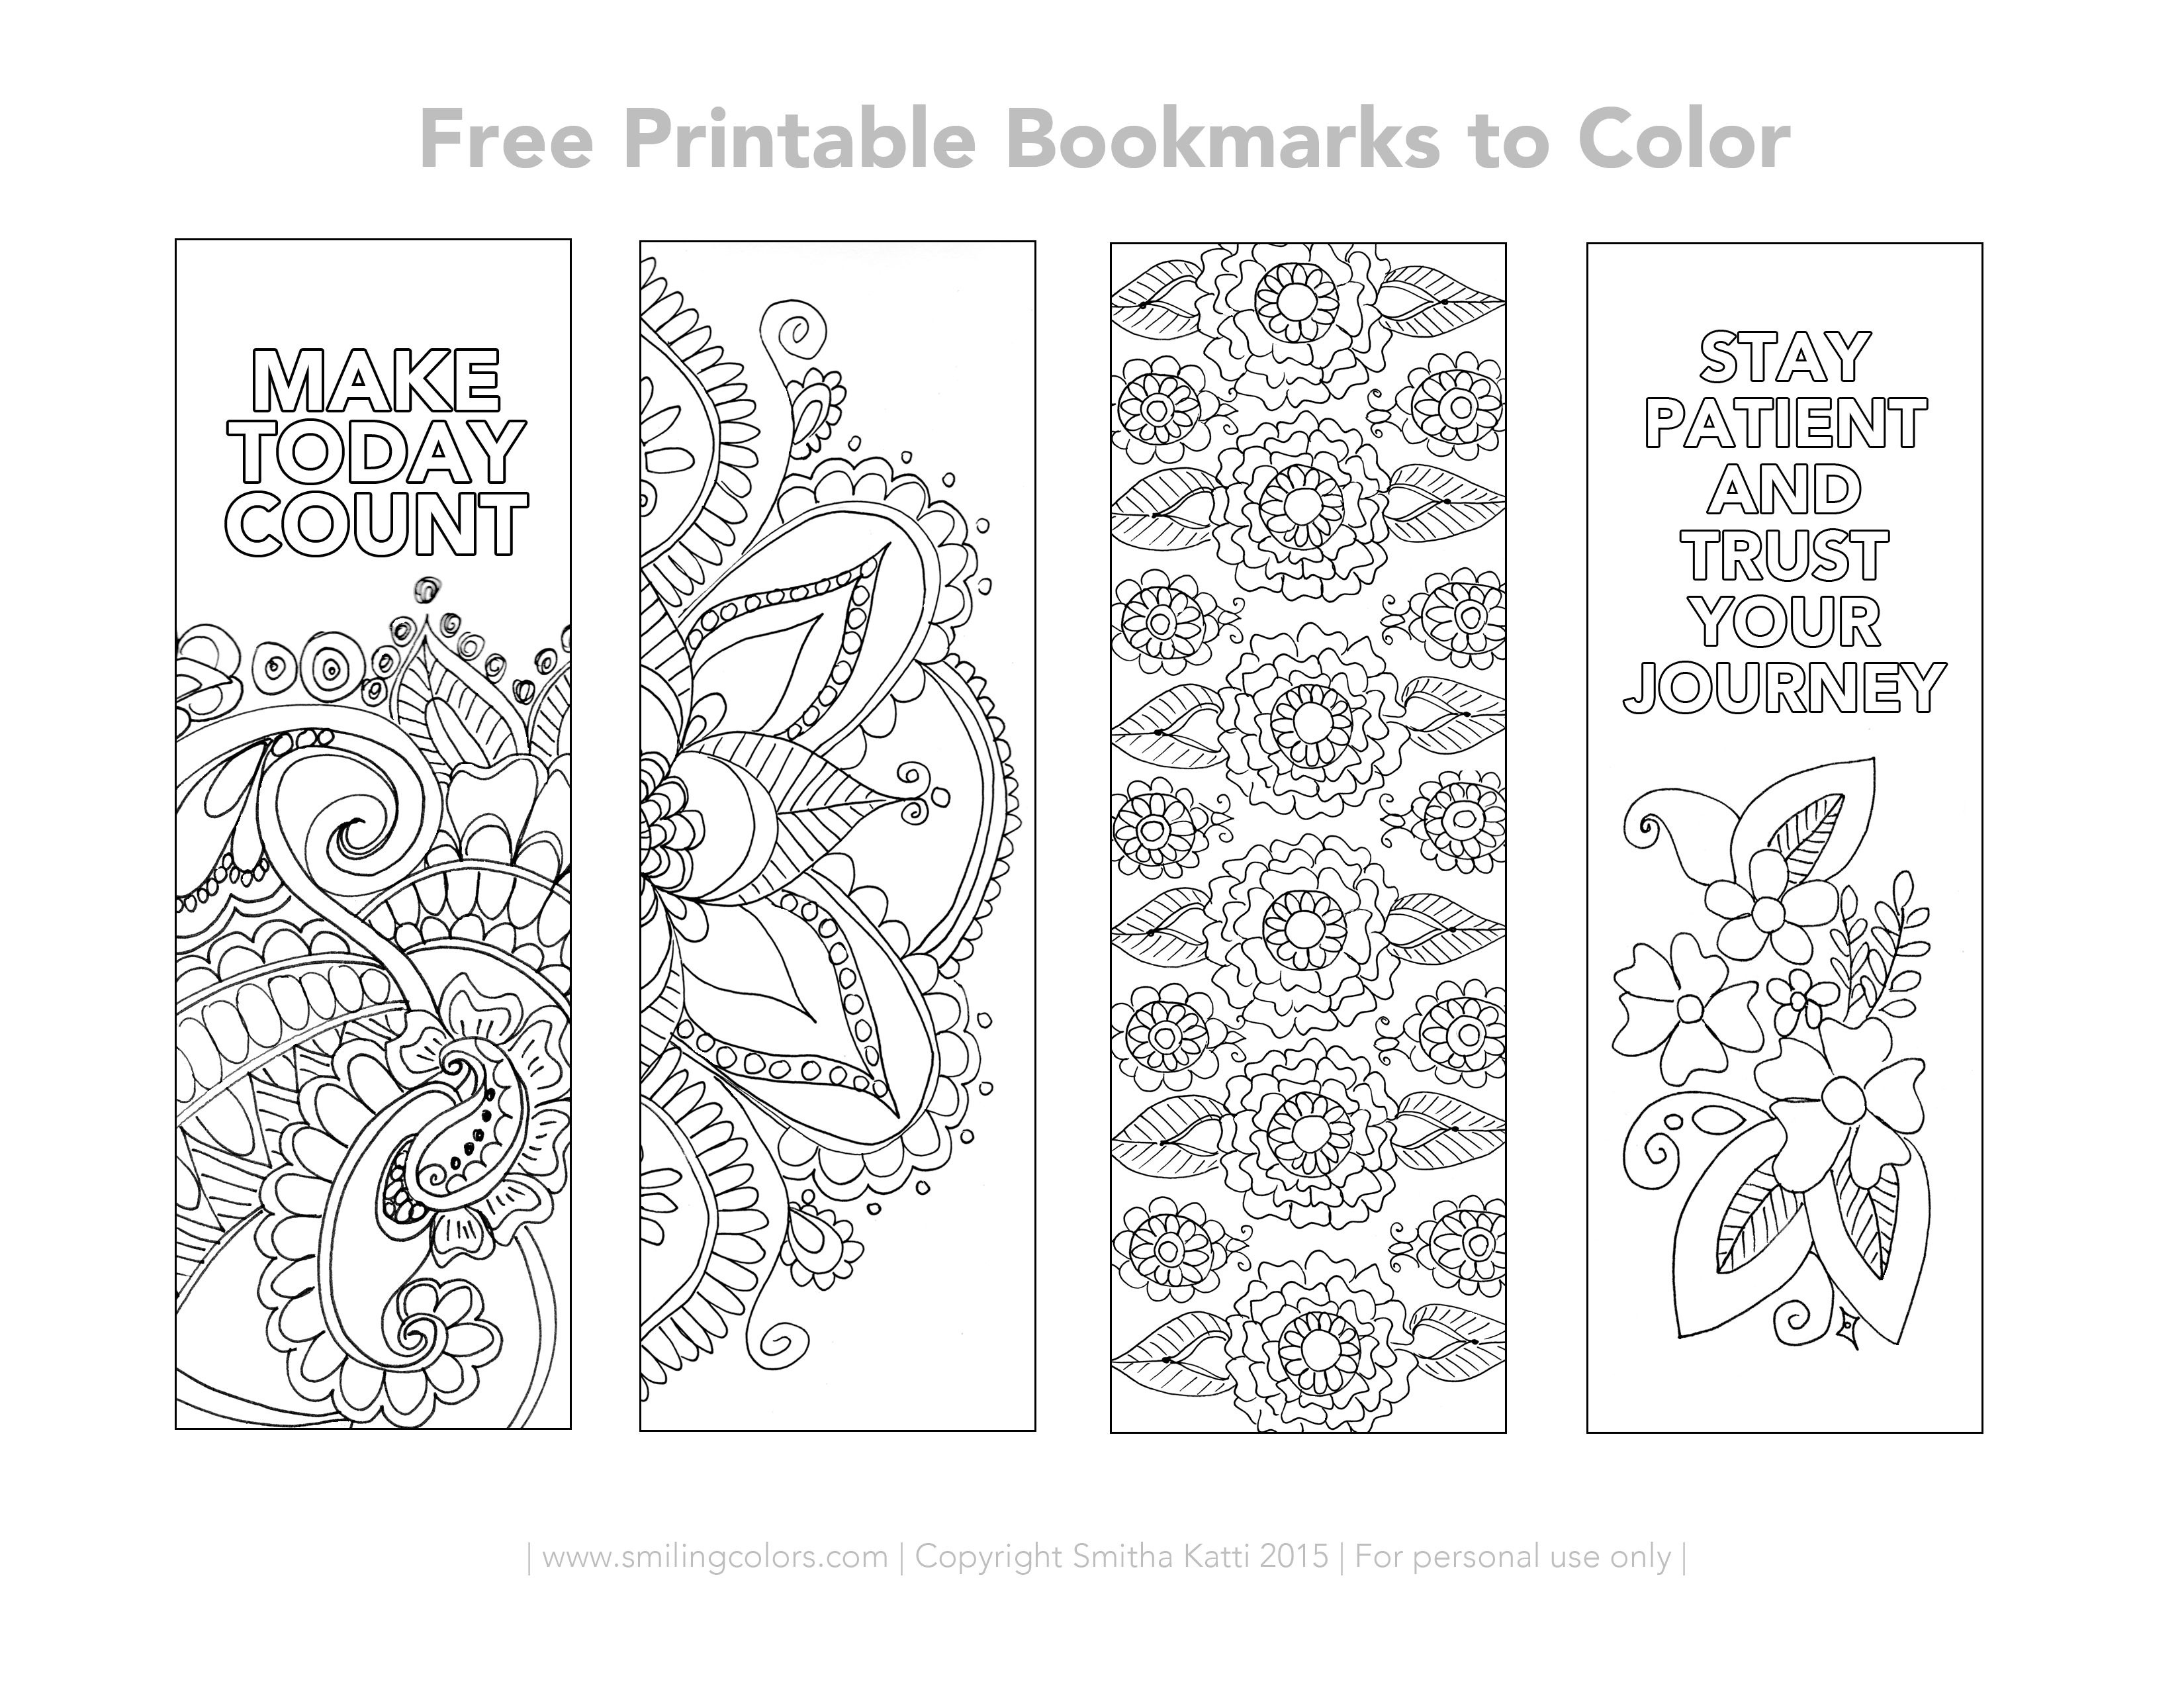 Free Printable Bookmarks To Color   Inspirational   Free Printable - Free Printable Spring Bookmarks